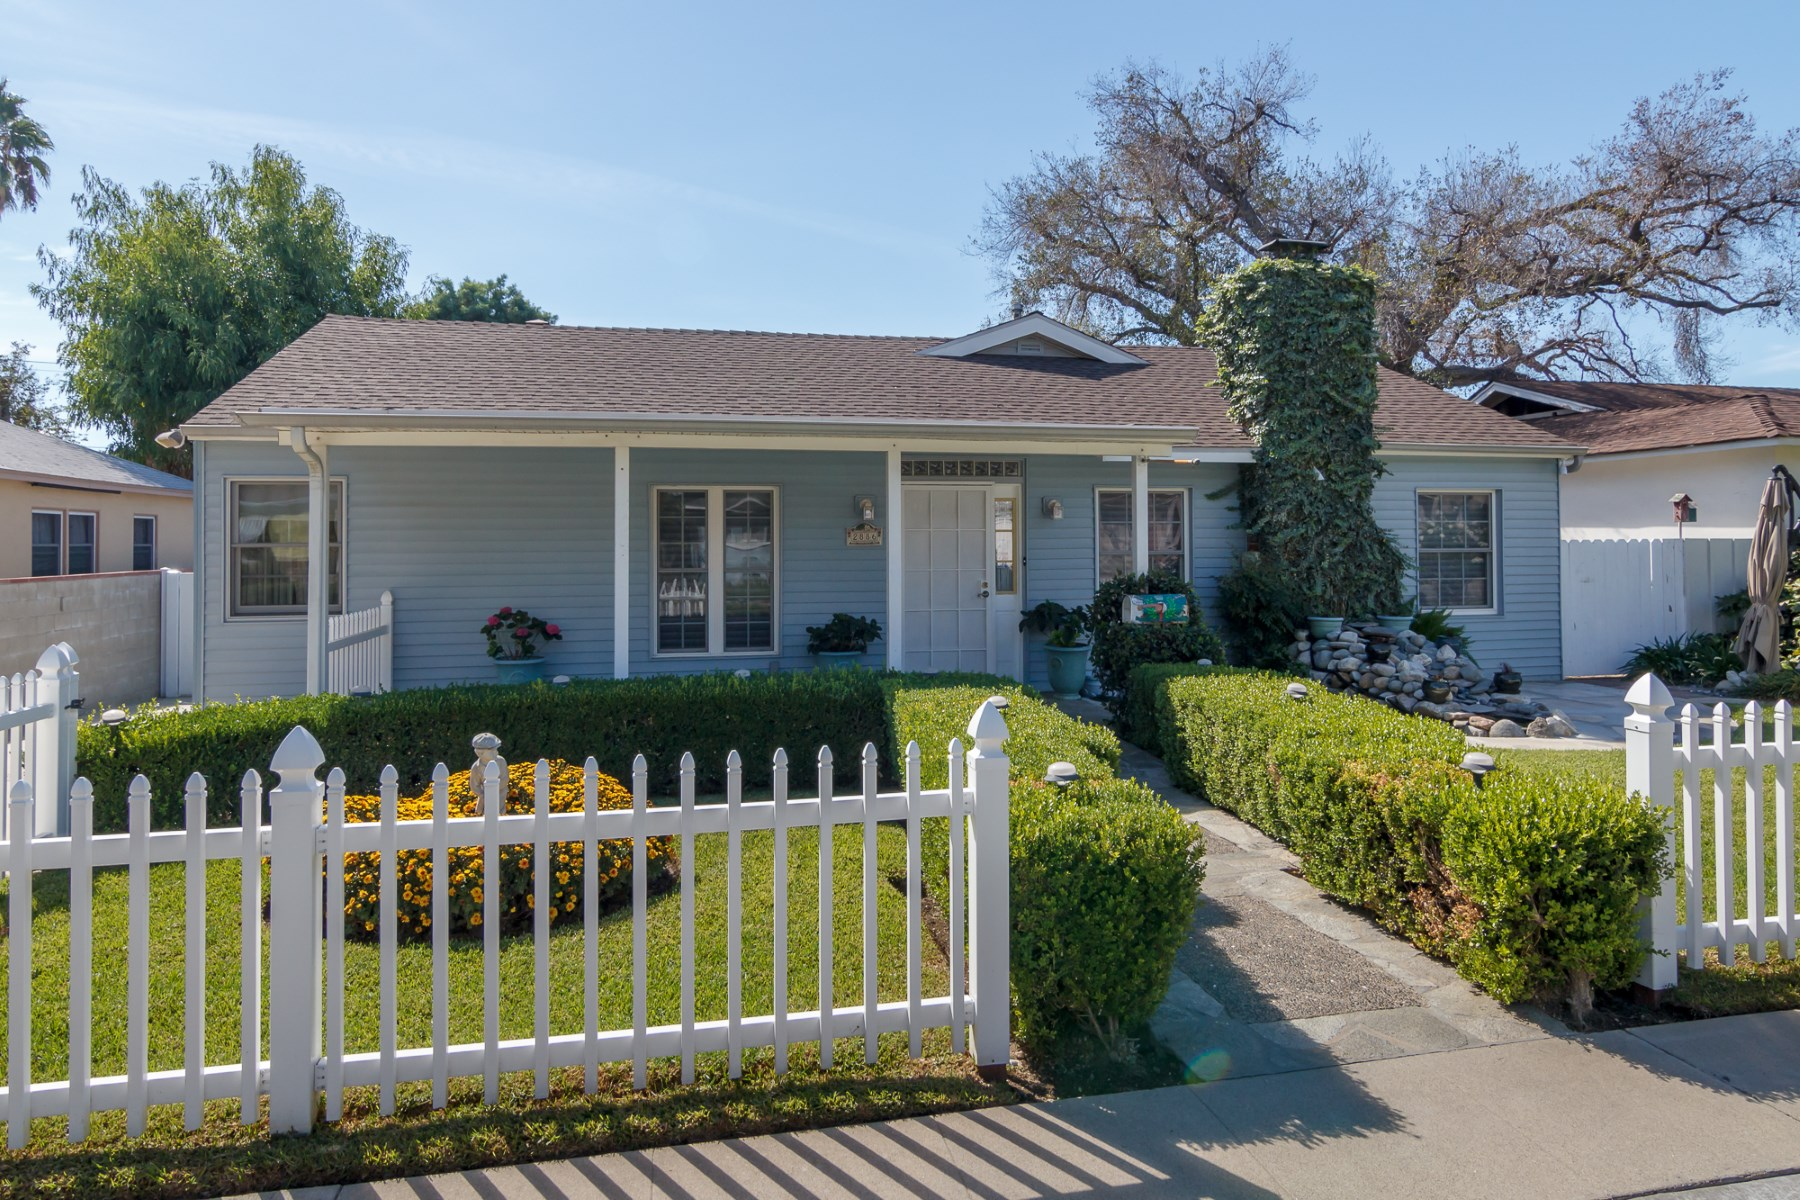 Single Family Home for Sale at Highly Desirable Residence in Great Pasadena Neighborhood 2886 Paloma Street Pasadena, California 91107 United States